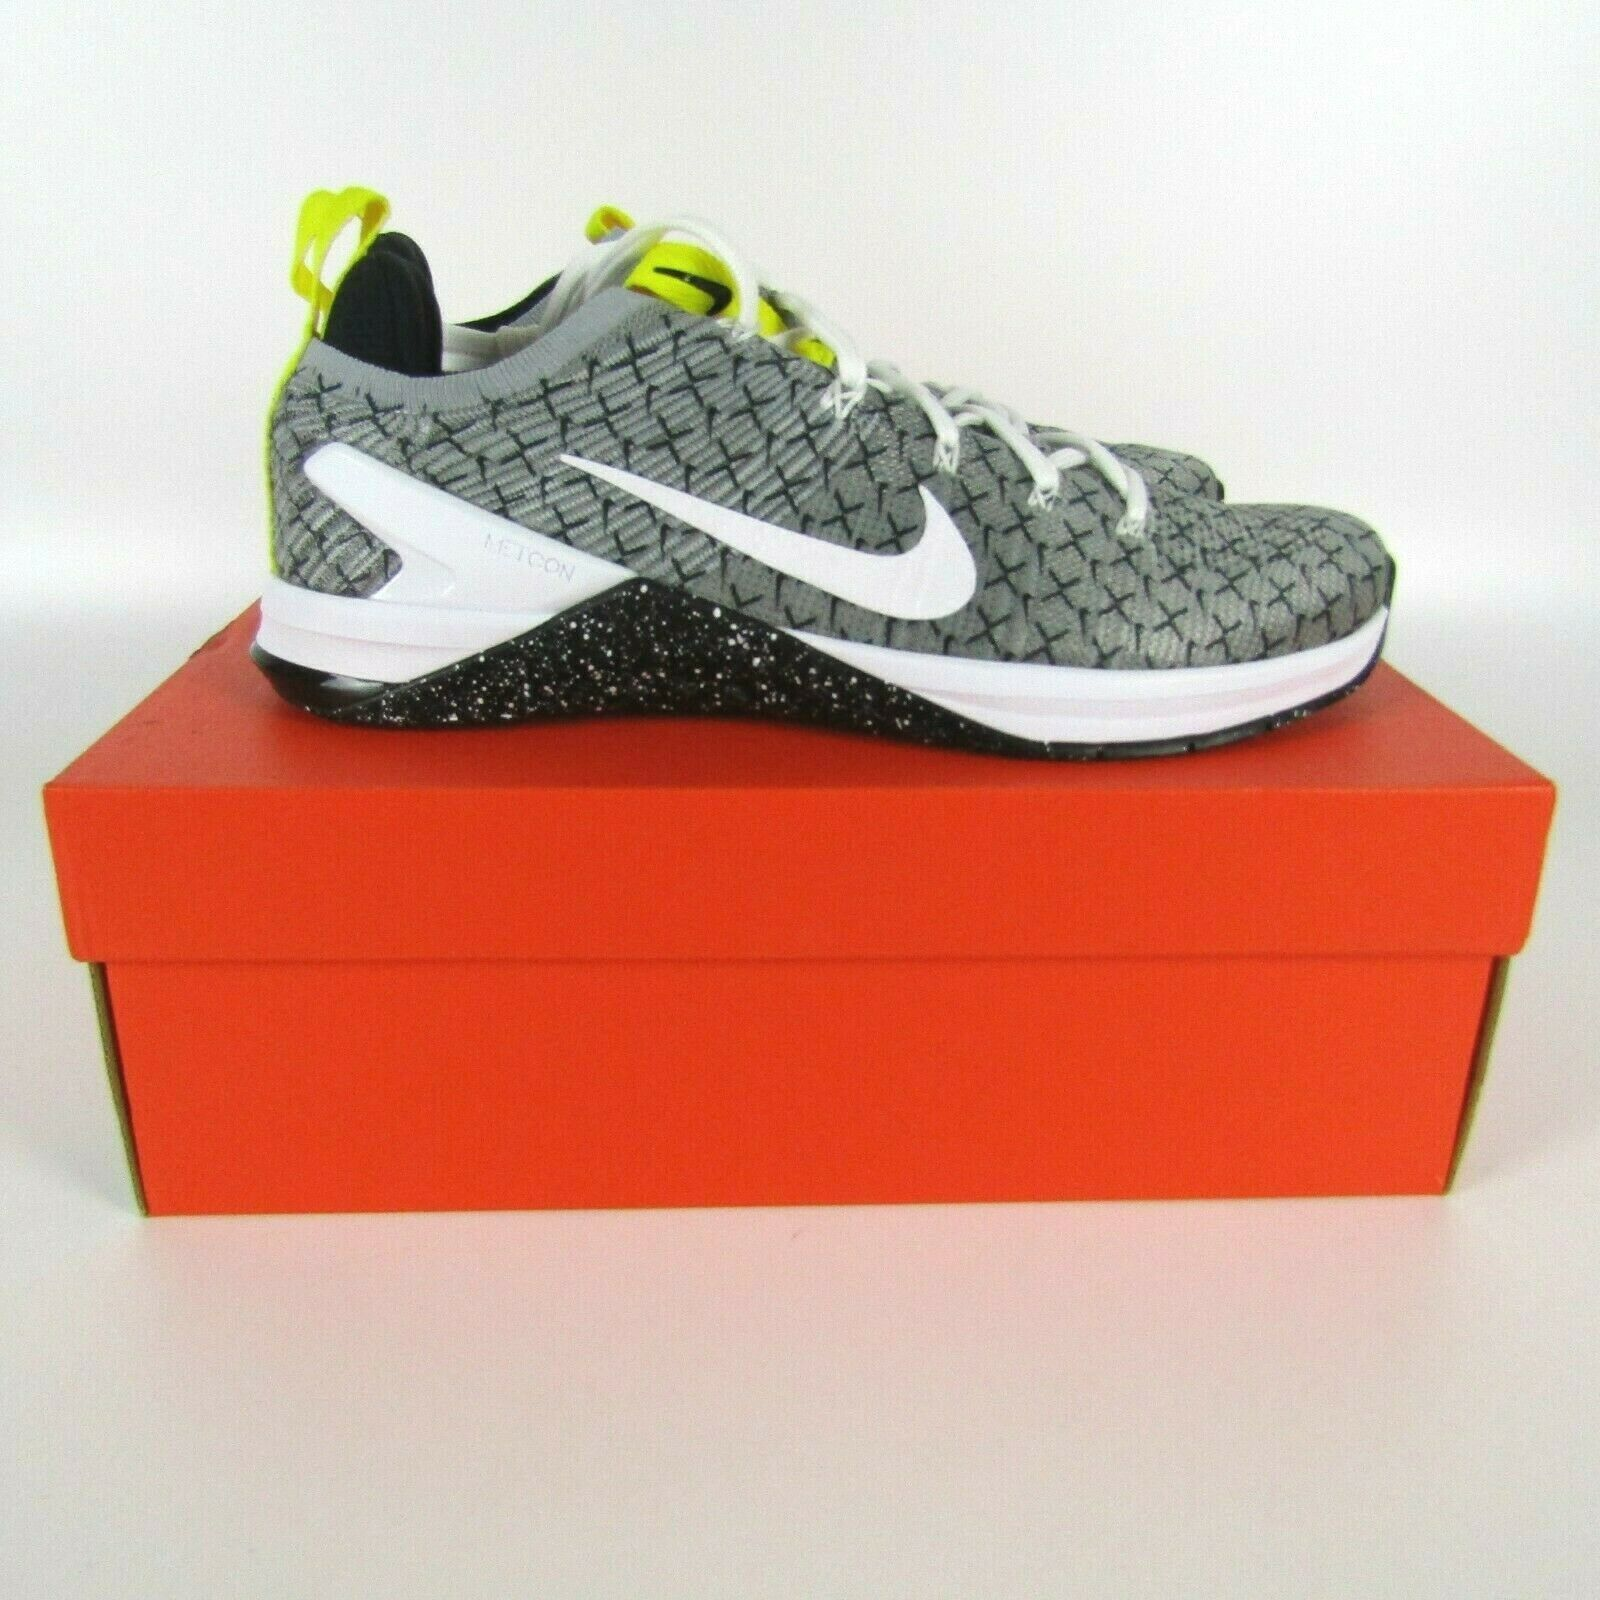 Nike Metcon DSX Flyknit 2X Mens Black White Yellow Training Running AO2807-017